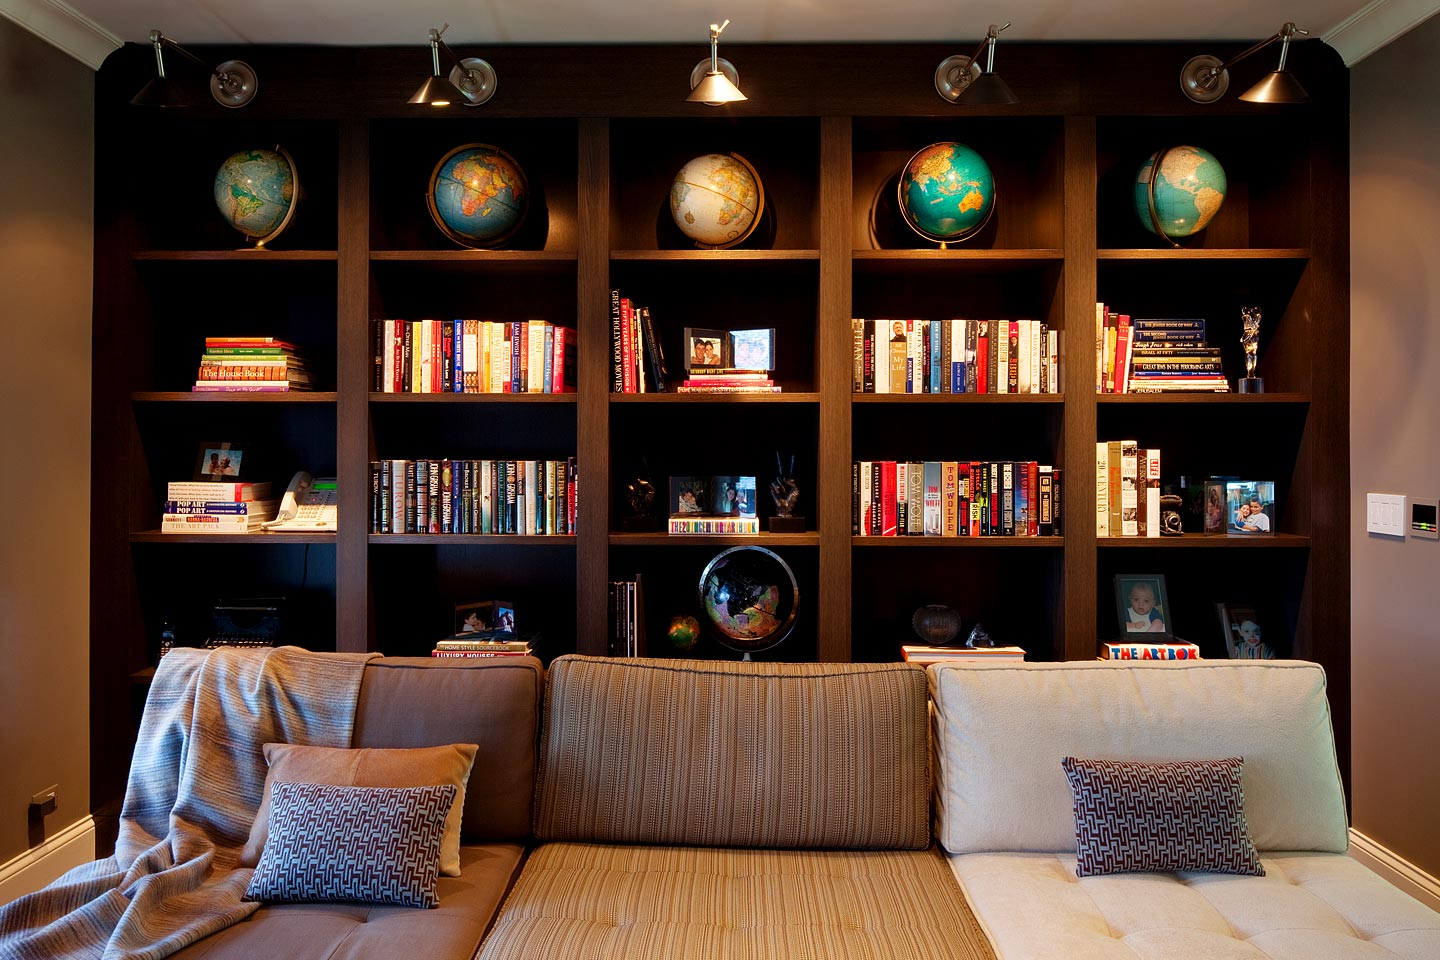 a cozy den upstairs, featuring a large built-in bookcase behind a large couch, photographed by Jacob Rosenfeld